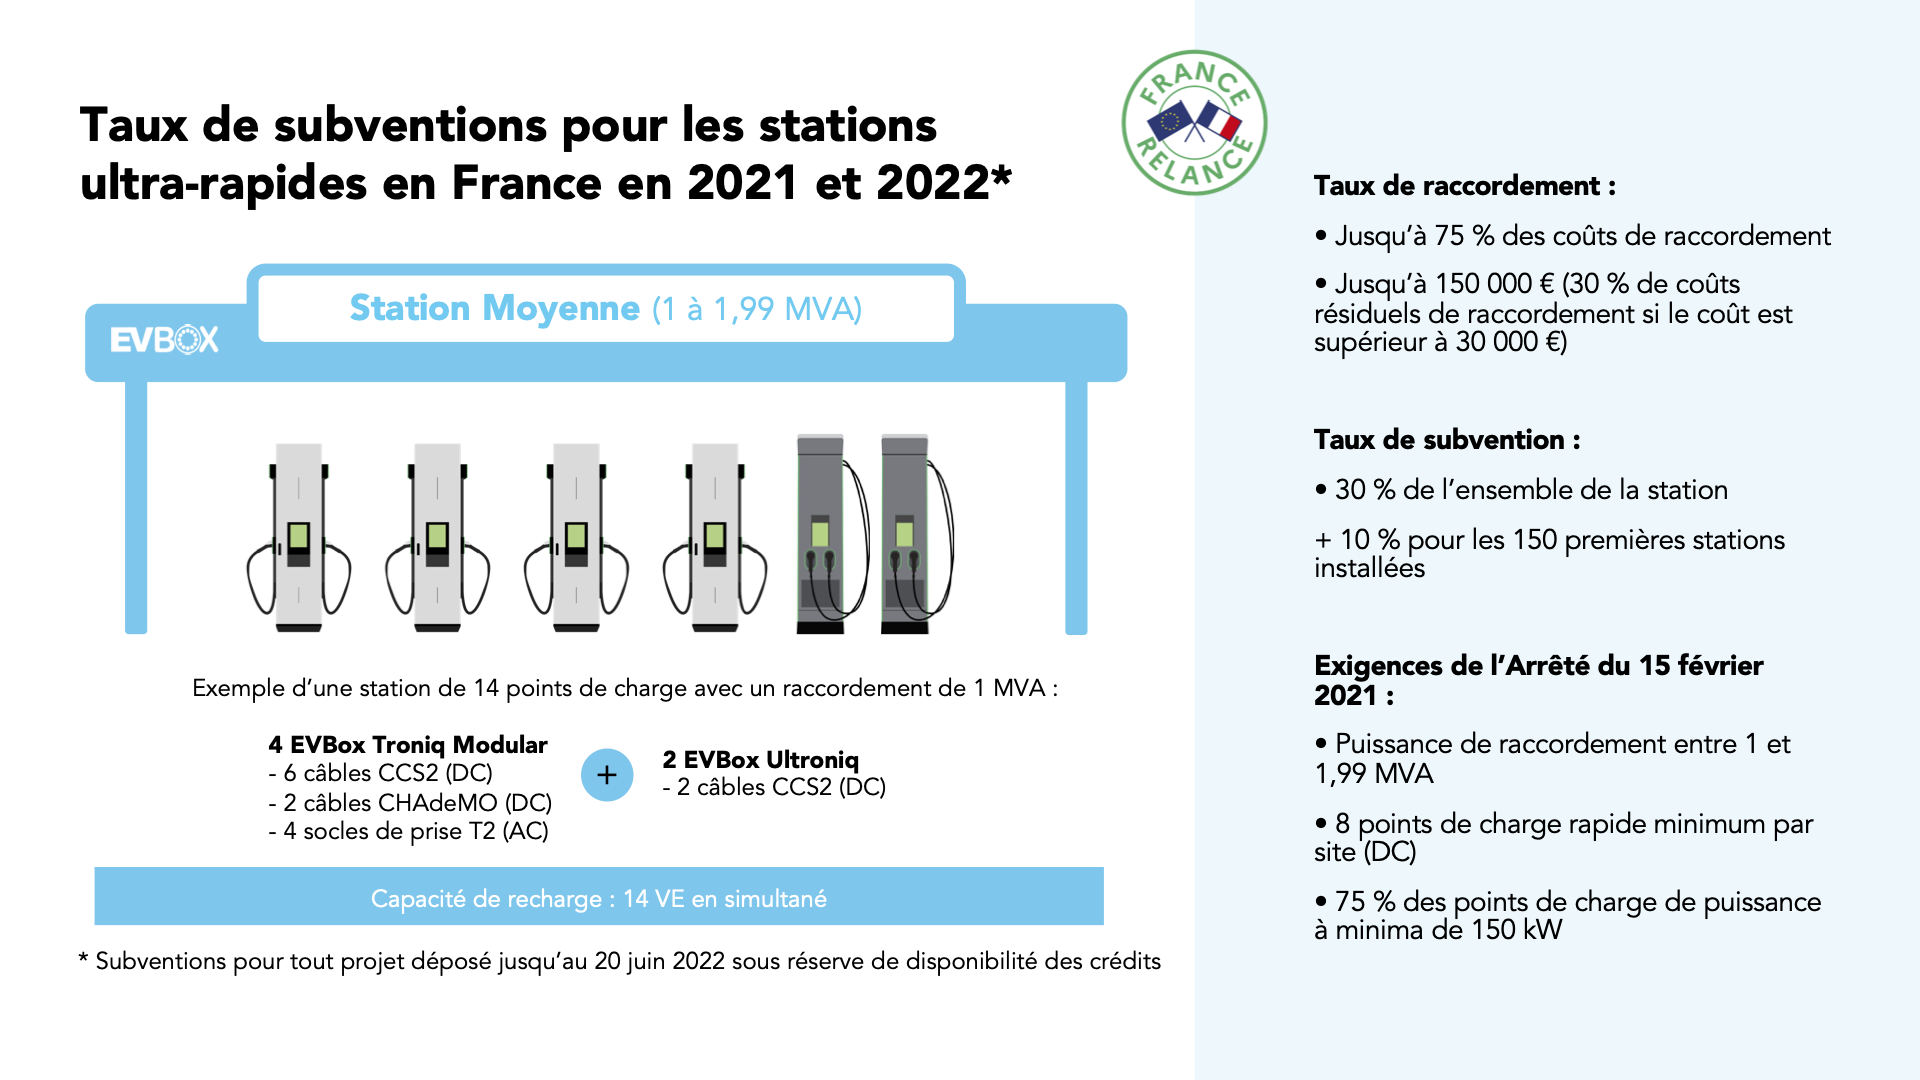 FR-blog-subventions-France-Relance-moyenne-station-recharge